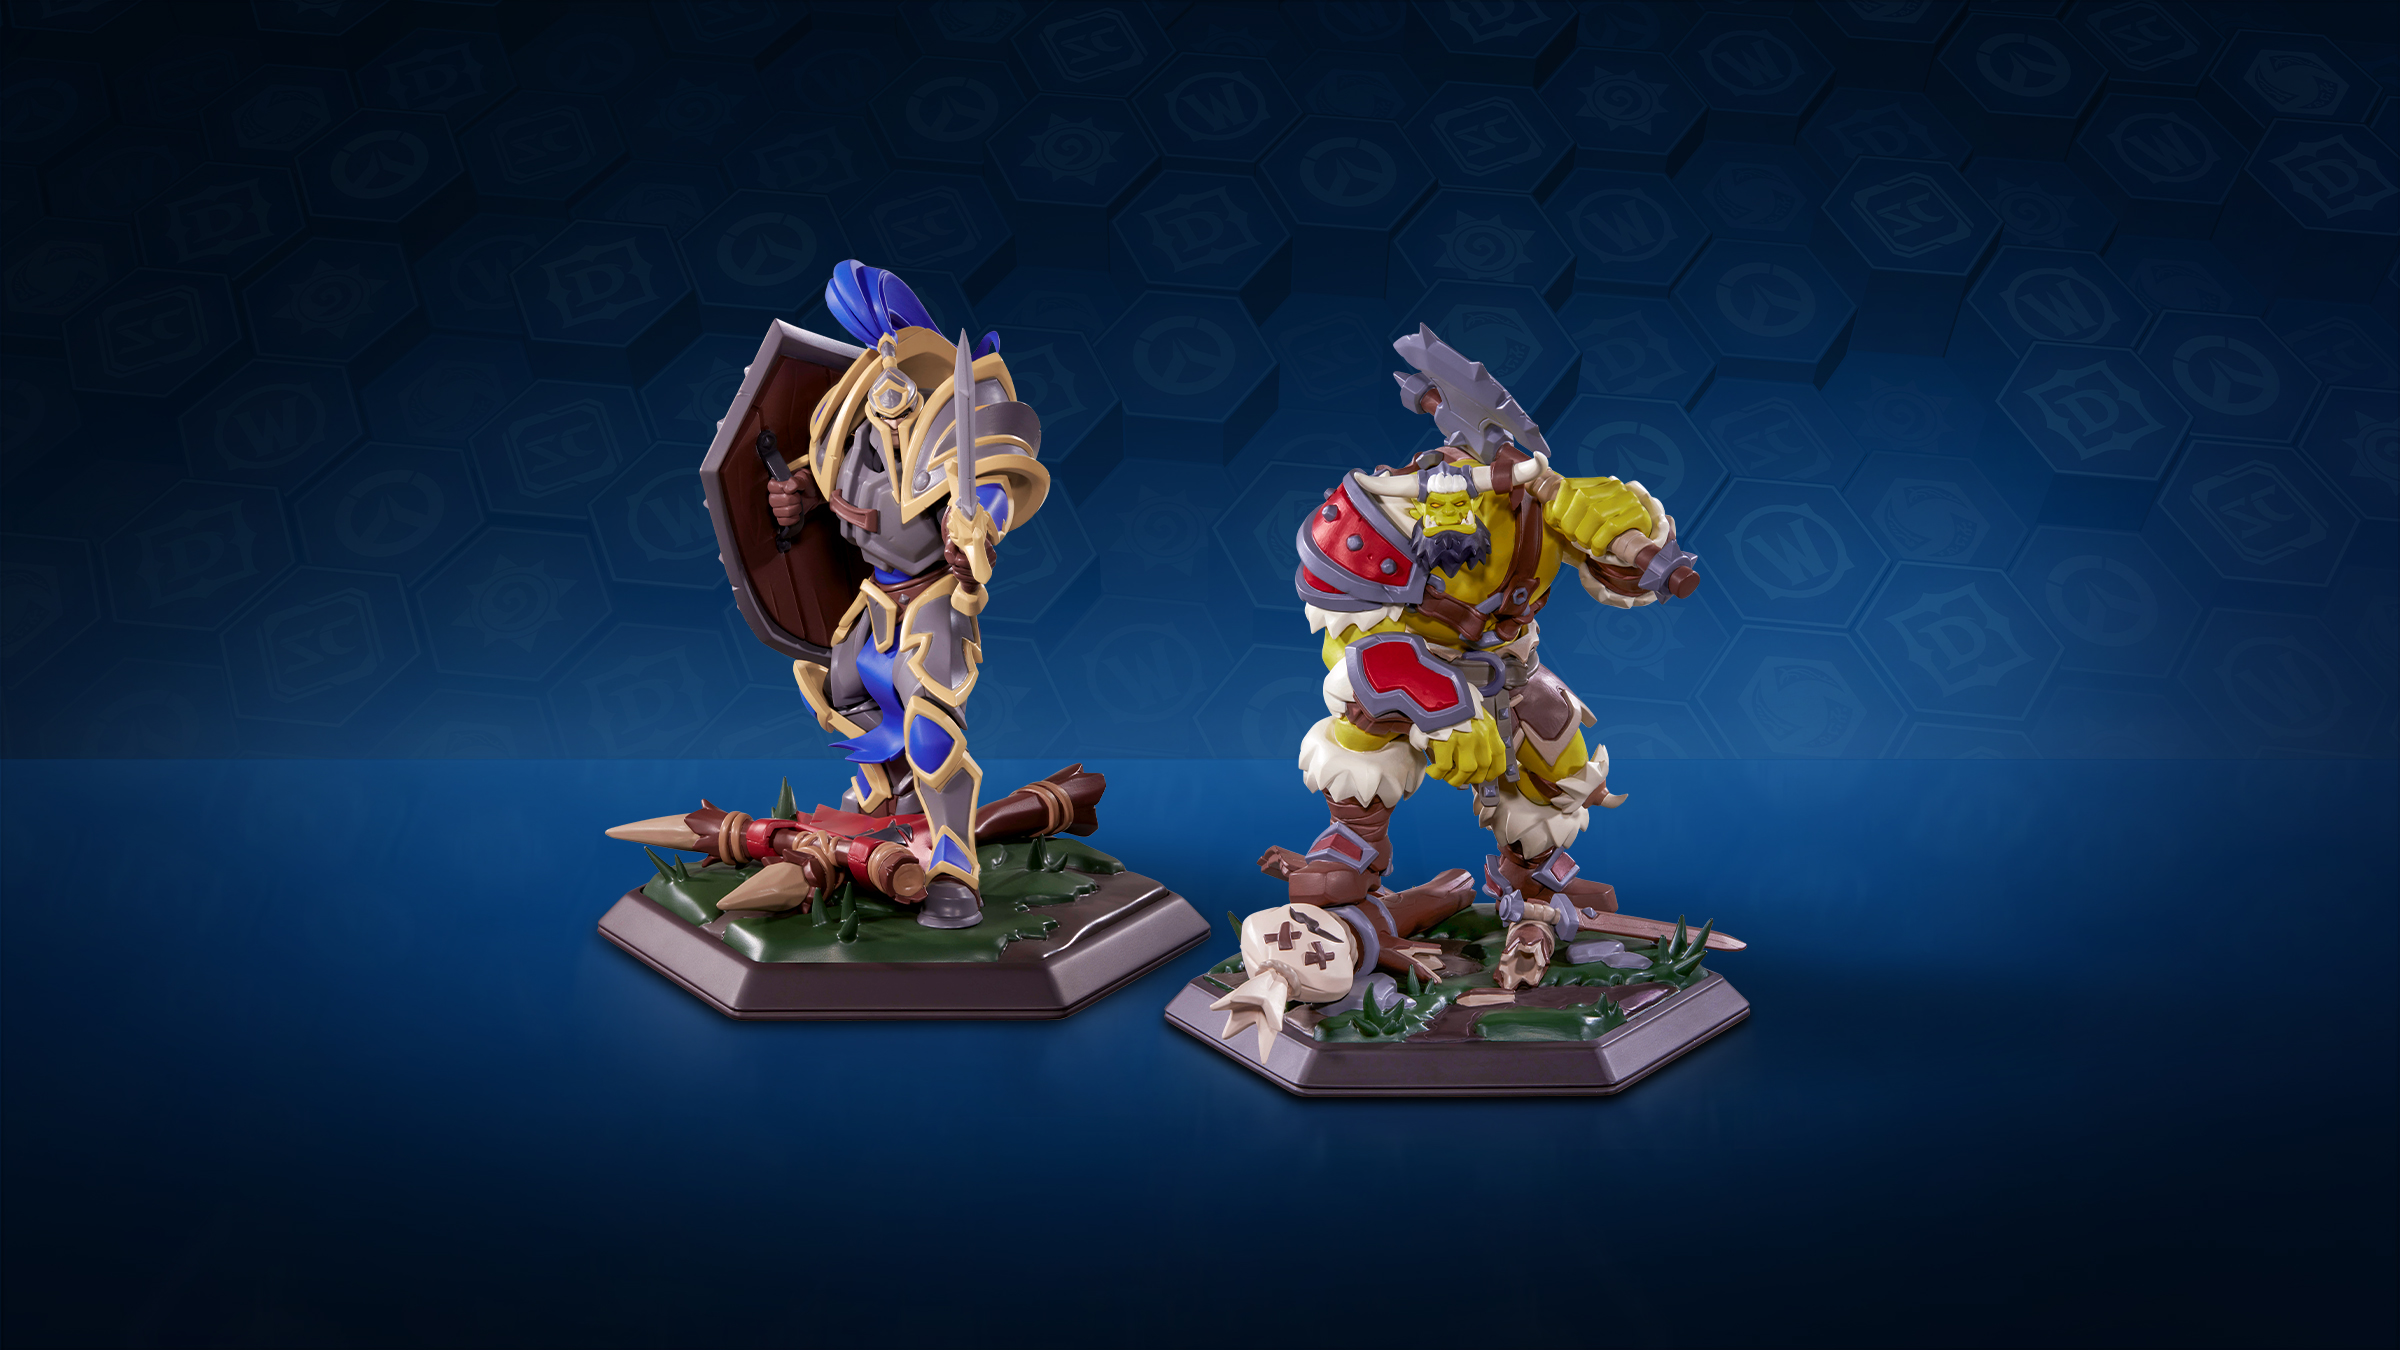 BlizzCon 2019 Commemorative Collectible Celebrates 25 Years of Warcraft